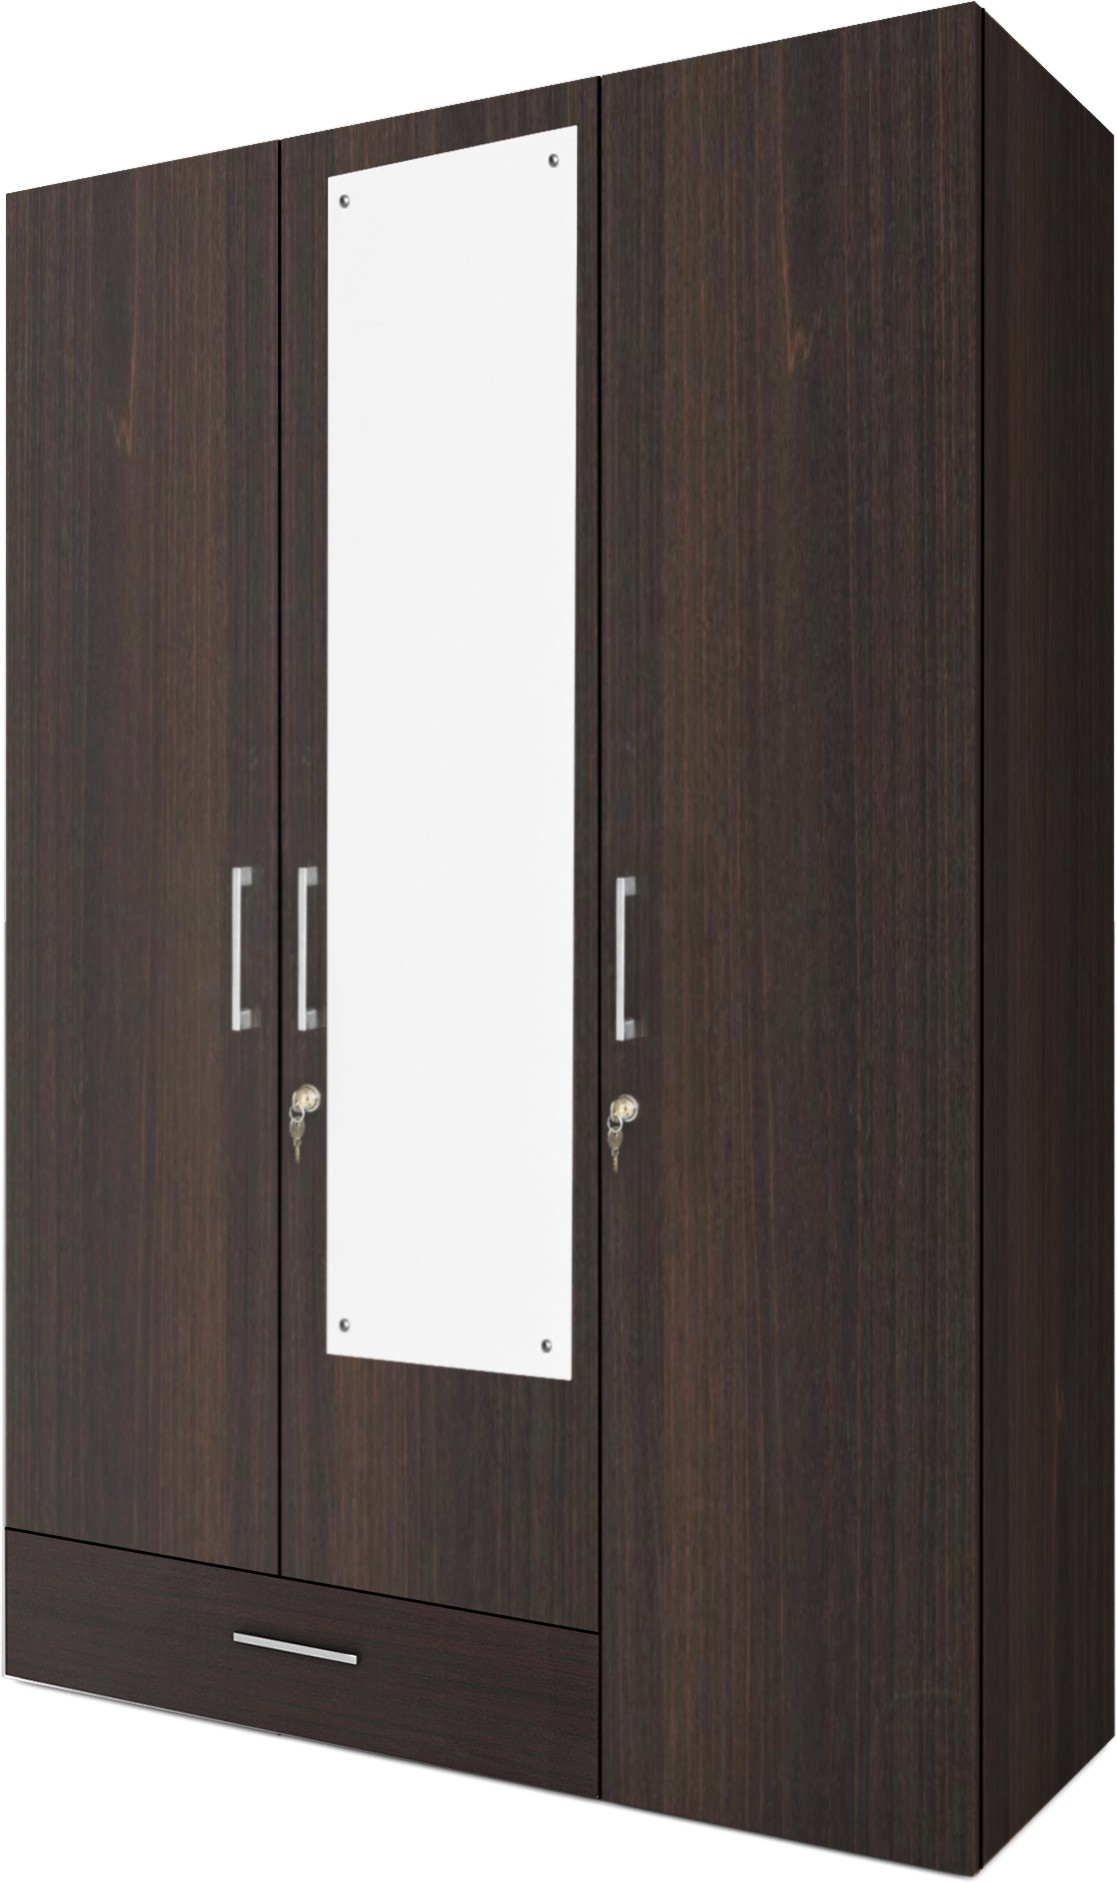 View UNiCOS Durban Engineered Wood 3 Door Wardrobe(Finish Color - Wyoming Maple, Mirror Included) Furniture (UNiCOS)